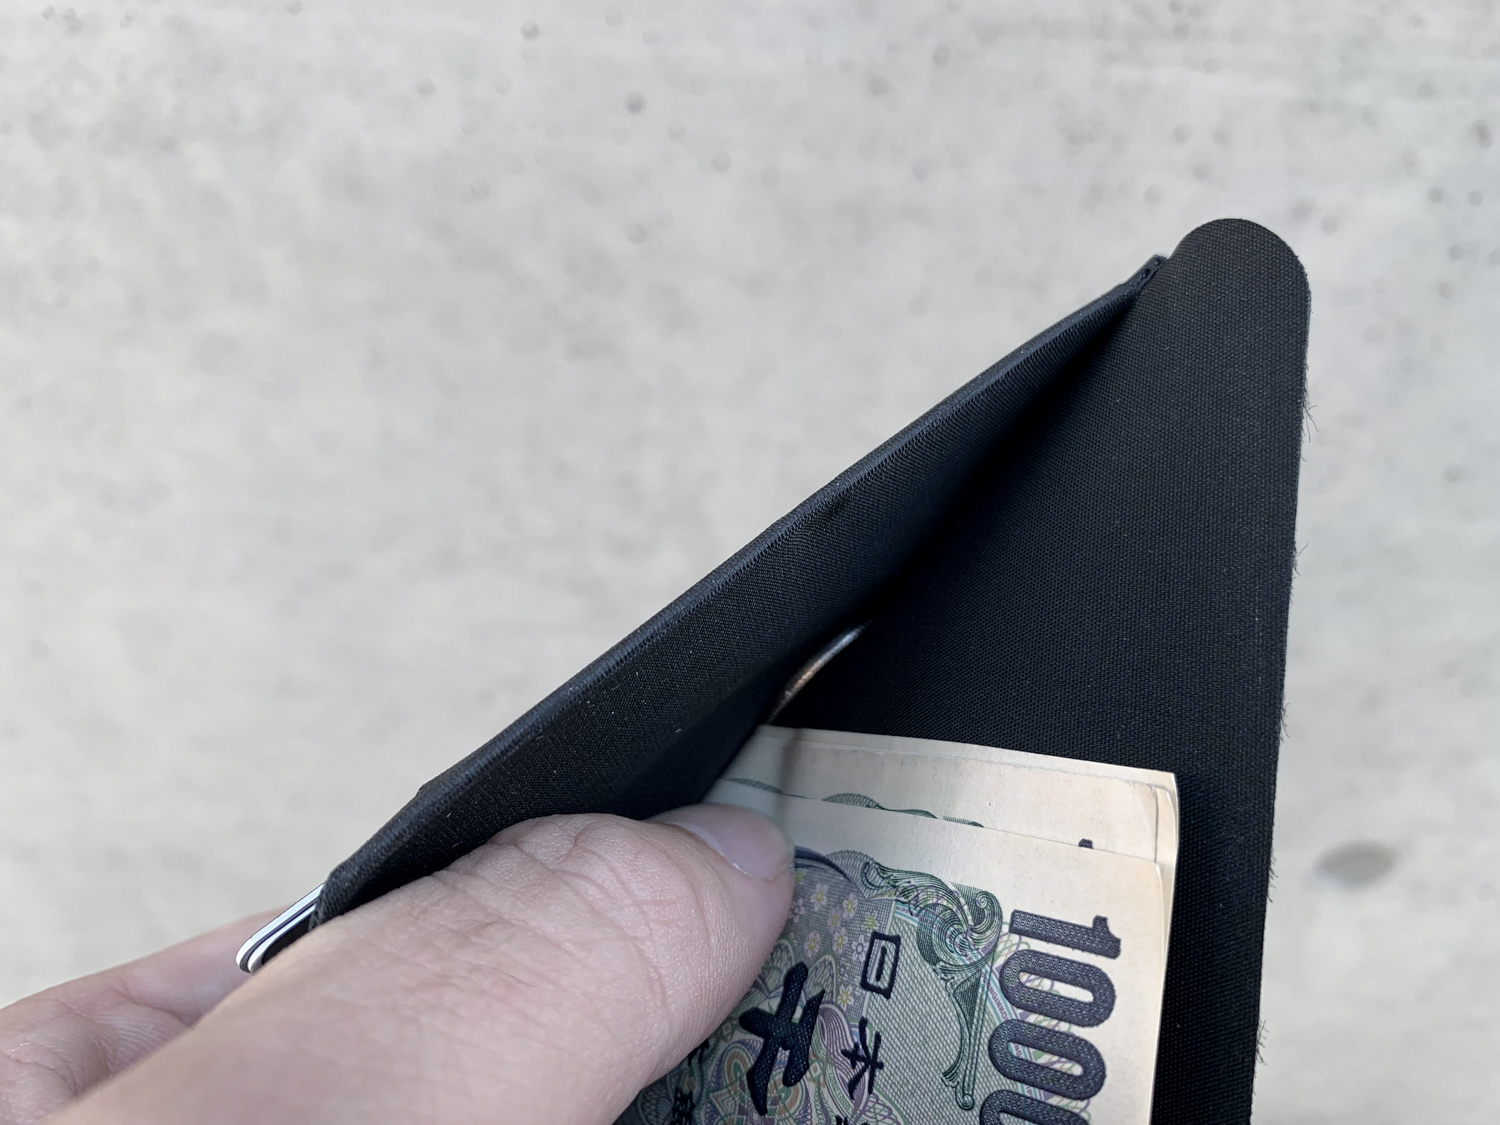 A bifold wallet means no coins compartment.